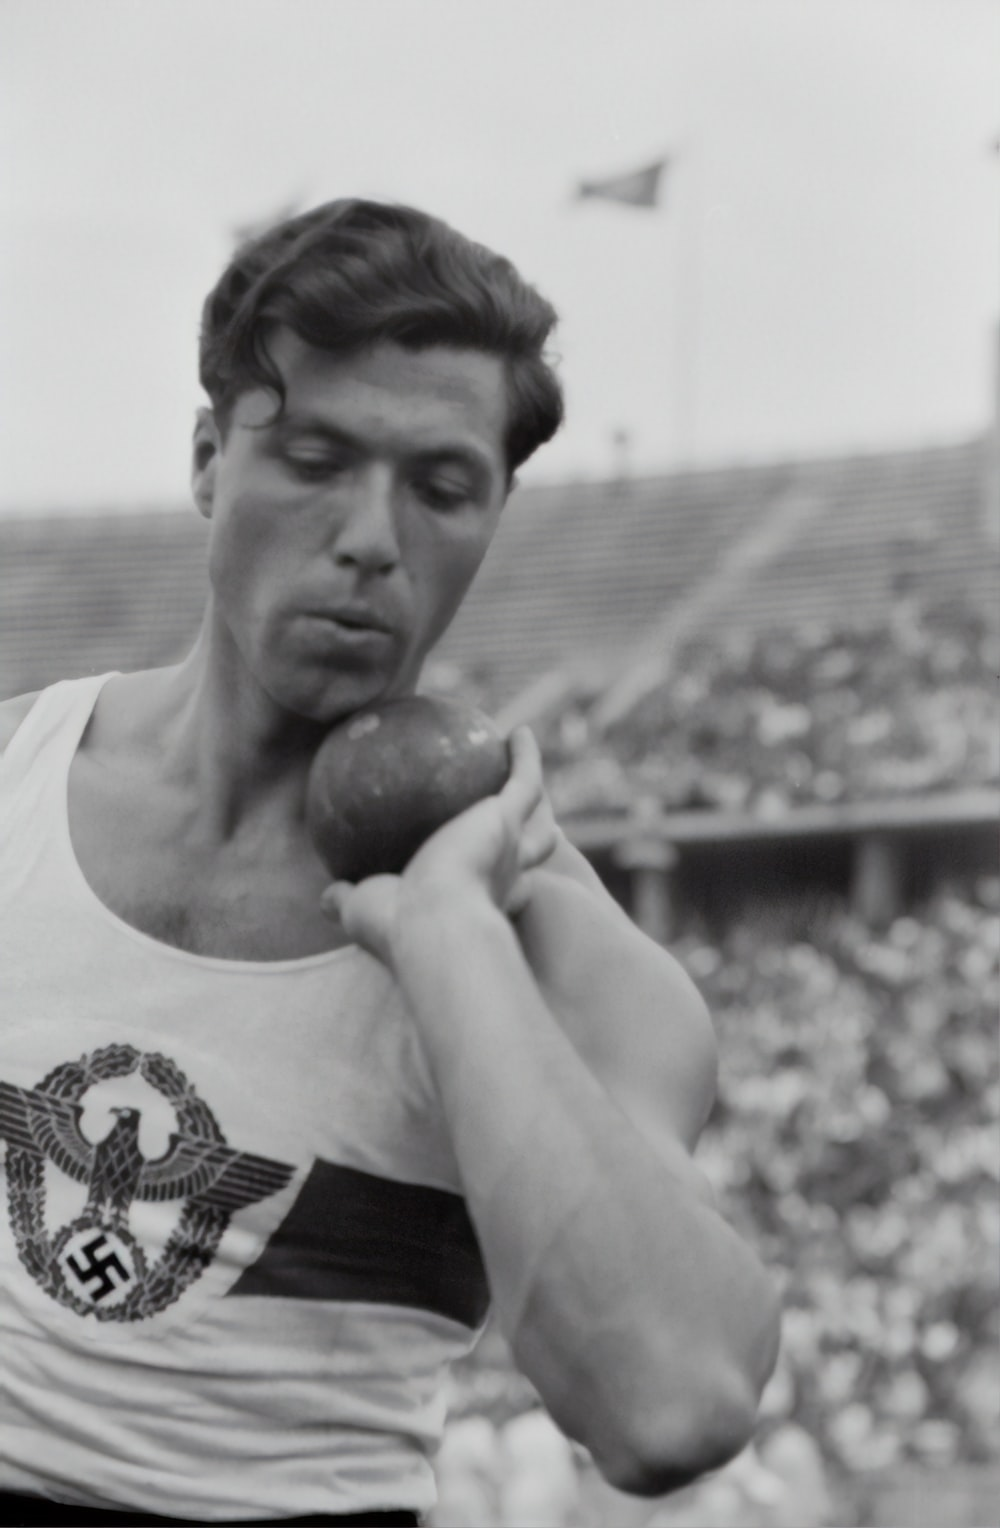 man holding discus ball